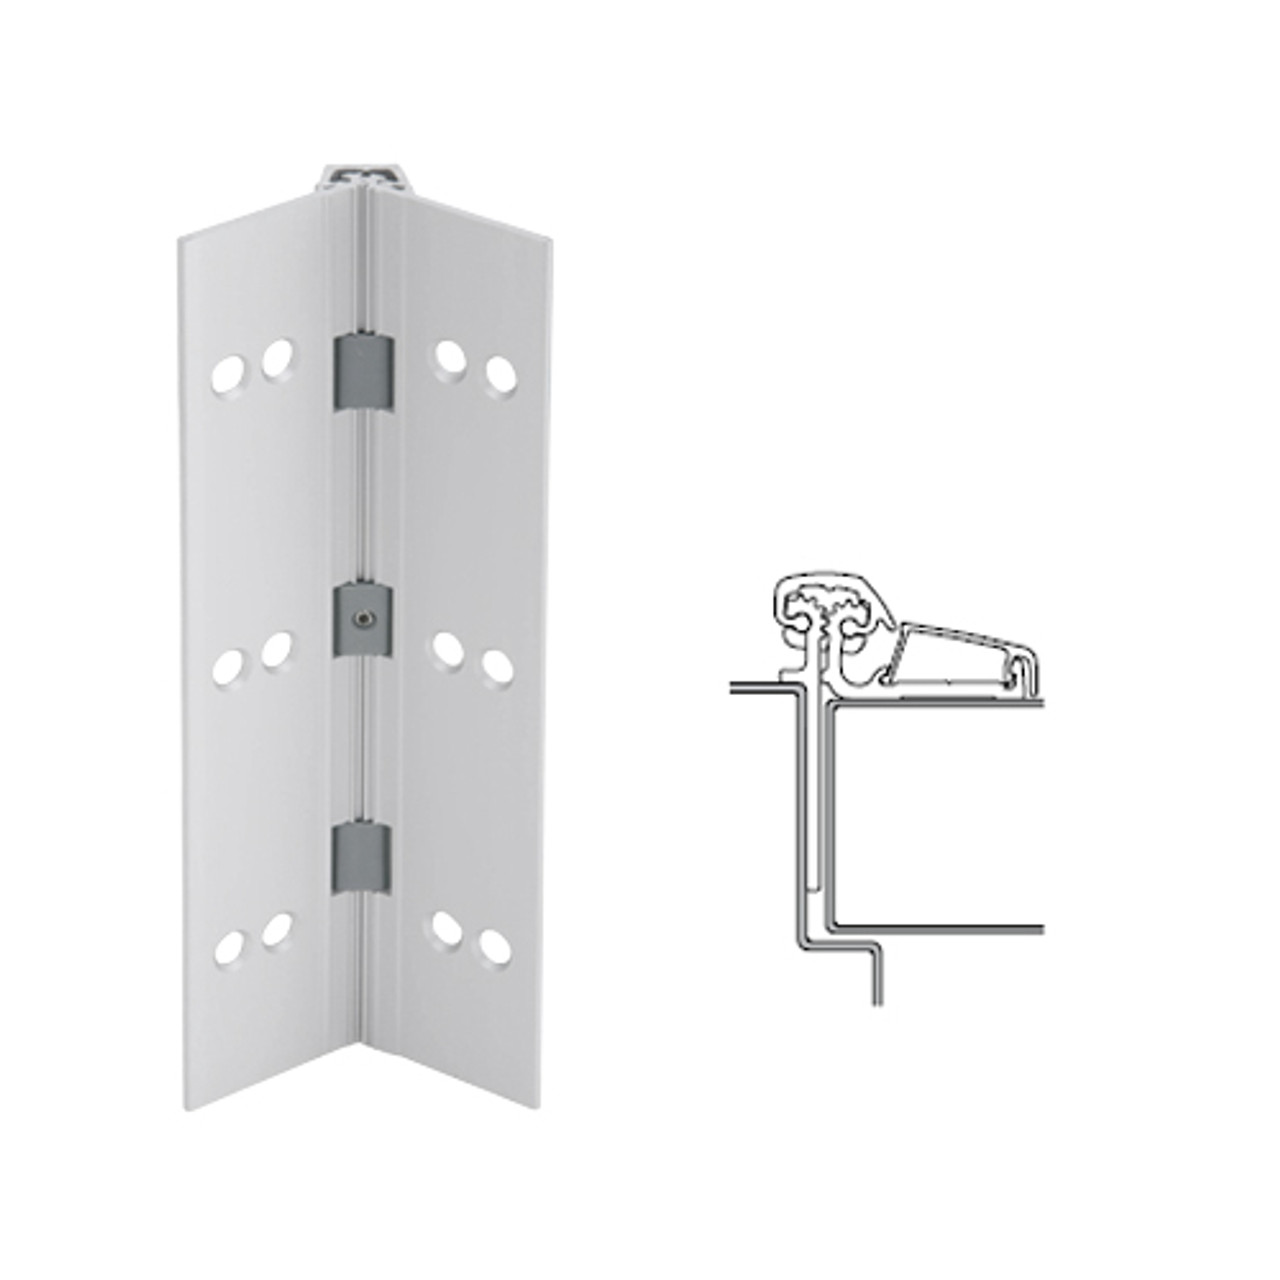 053XY-US28-85-SECHM IVES Adjustable Half Surface Continuous Geared Hinges with Security Screws - Hex Pin Drive in Satin Aluminum